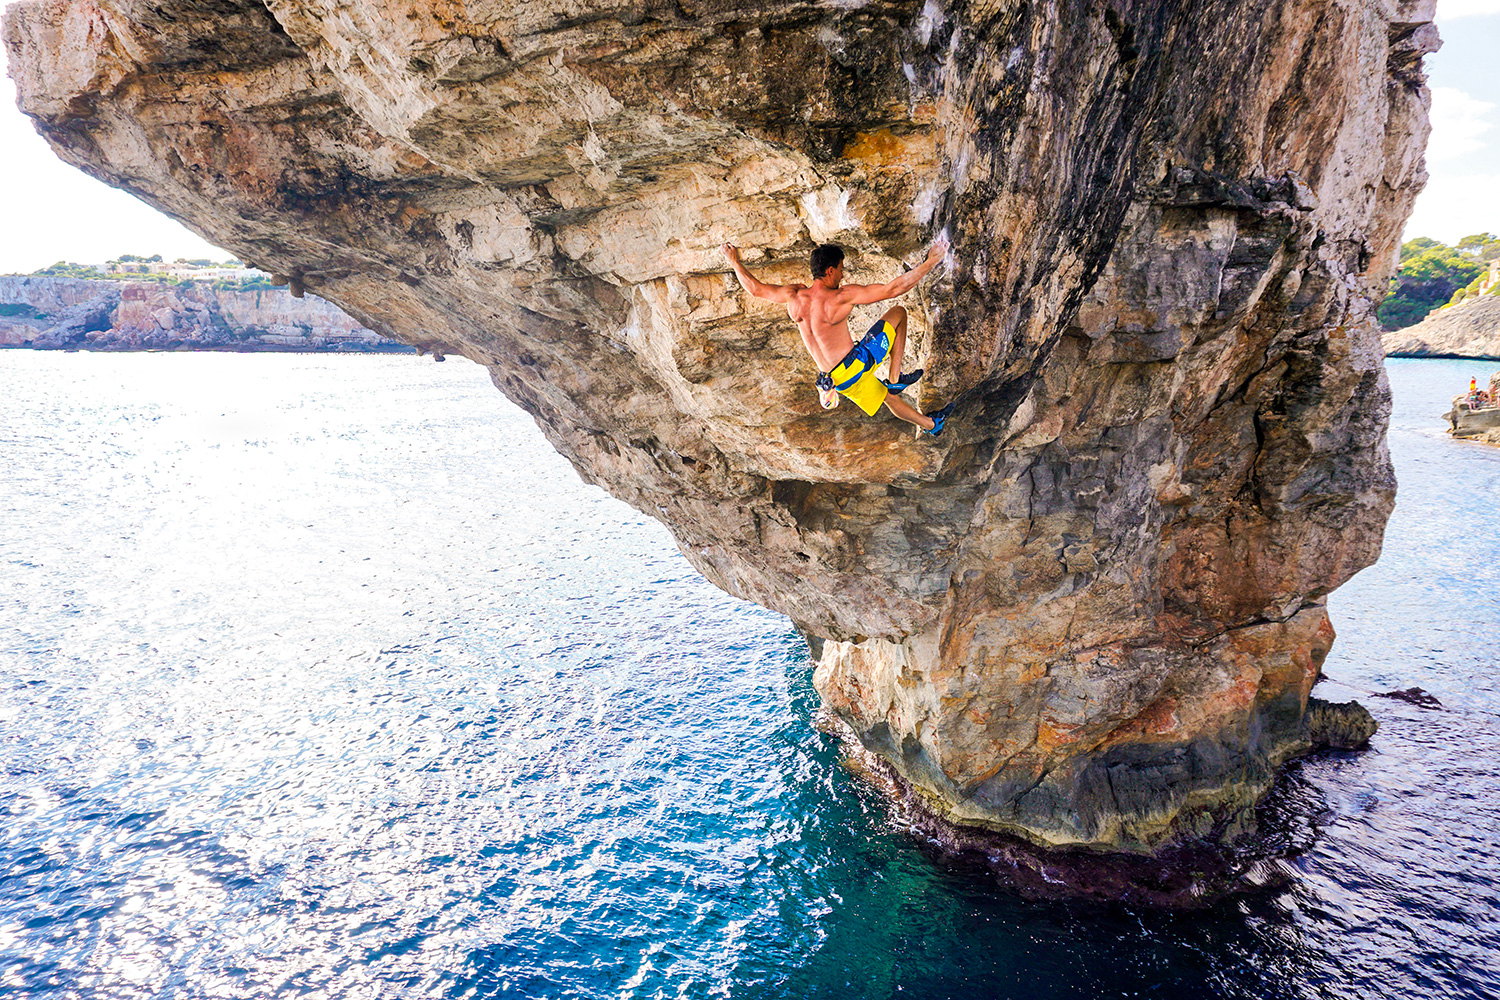 Jernej Kruder climbs Es pontas 9b second ascent (DWS), Mallorca 2016